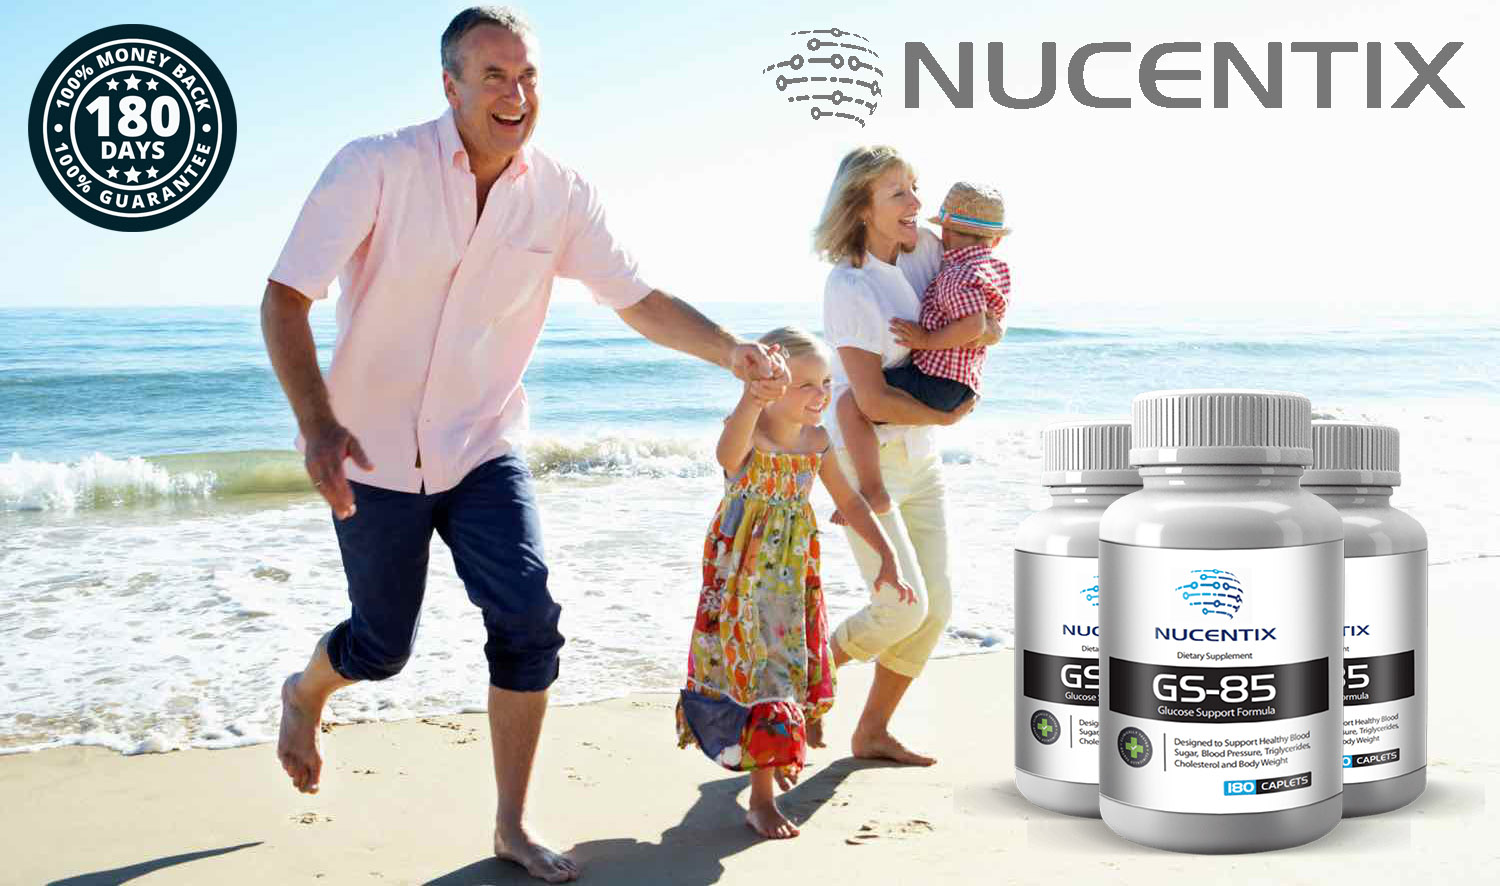 Nucentix GS-85 US Glucose Support Formula Review 2021: Is it Suitable for  Blood Sugar Support? | The American Reporter